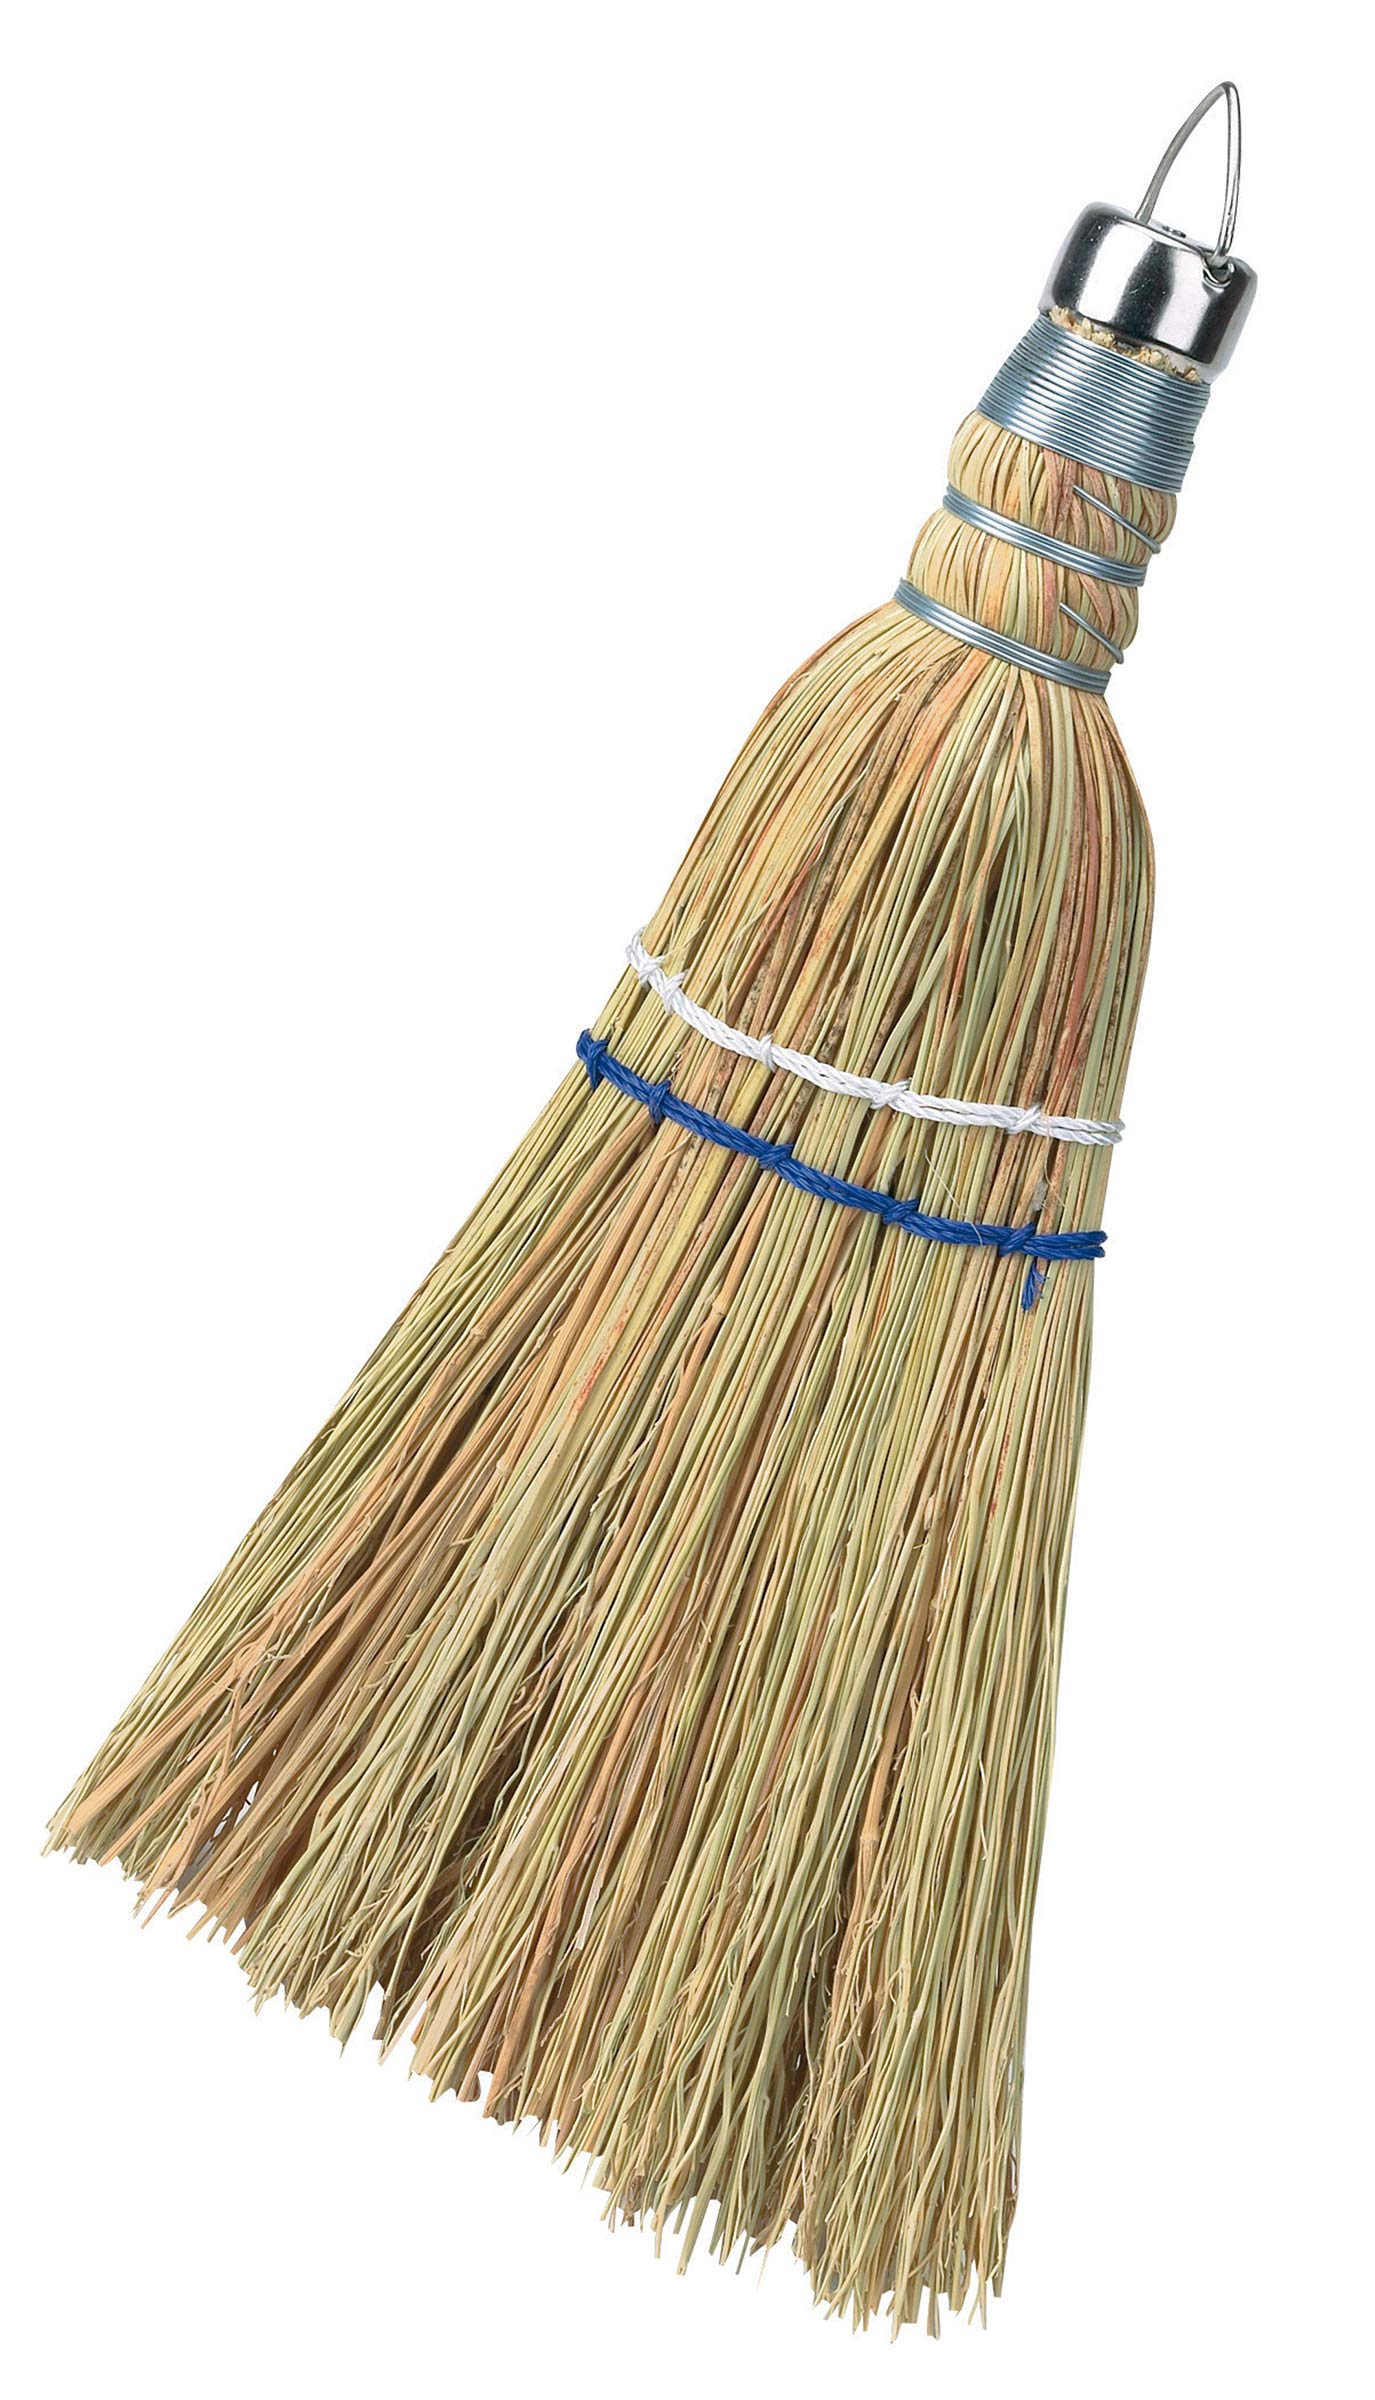 Carrand 93028 10'' Whisk Broom by Carrand (Image #2)